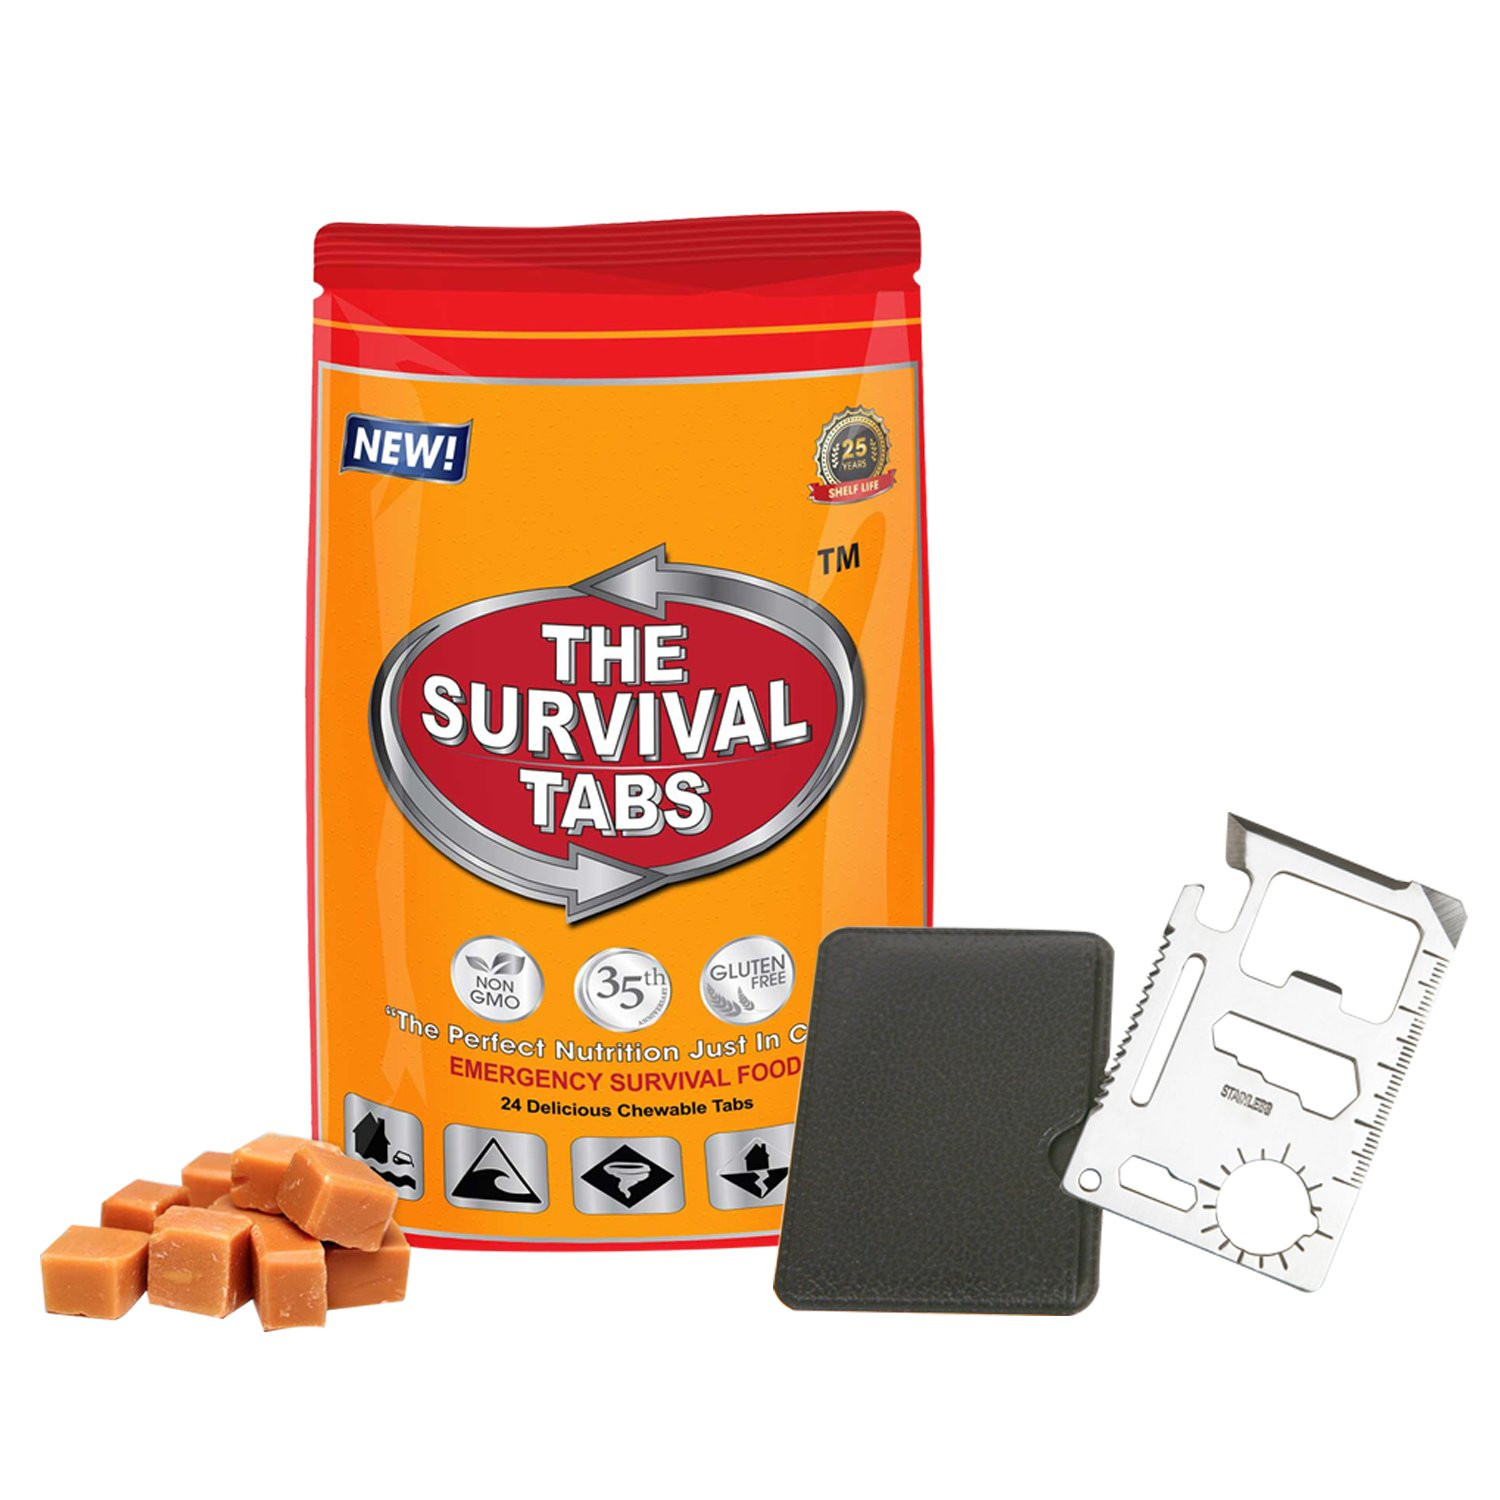 11 in1 Multi Tools Hunting Survival Camping Pocket Military Credit Card Knife + New Advanced Formula MRE Meals Ready-to-eat Survival Meal 2-Day supply 24 tabs Ultimate Bugout Food 25 Years shelf life Gluten Free and Non-GMO - Butterscotch Flavor irradiated ready to eat meal